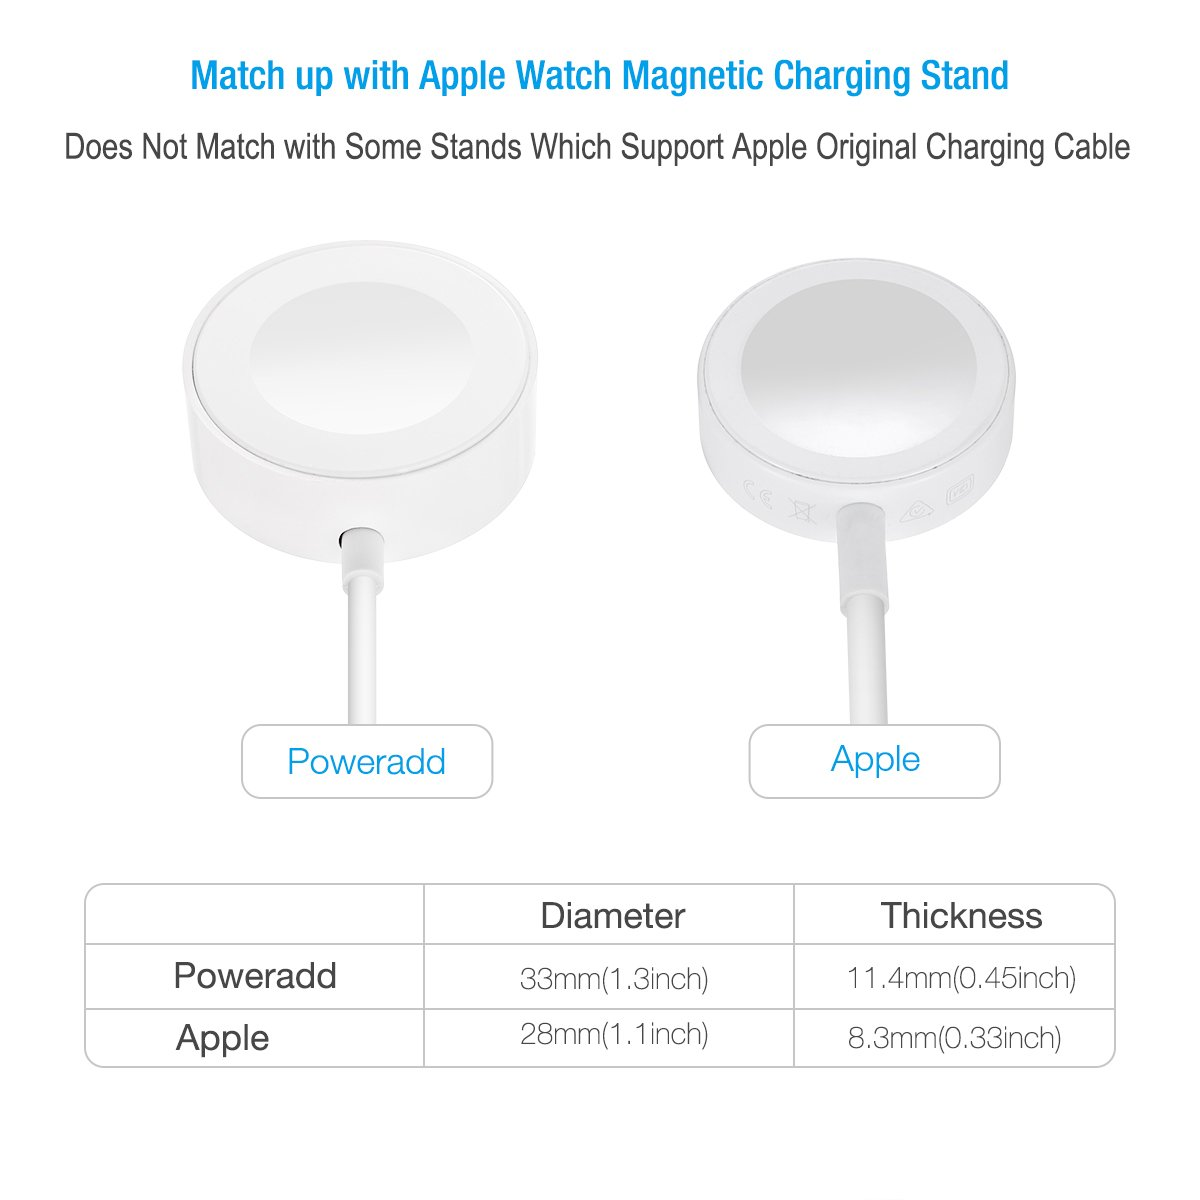 [ Apple MFi Certified ] Apple Watch Charger, Poweradd iWatch Magnetic Charging Cable 3.3 feet/1meter for iWatch 38mm & 42mm, Apple Watch Series 1 / 2 / 3